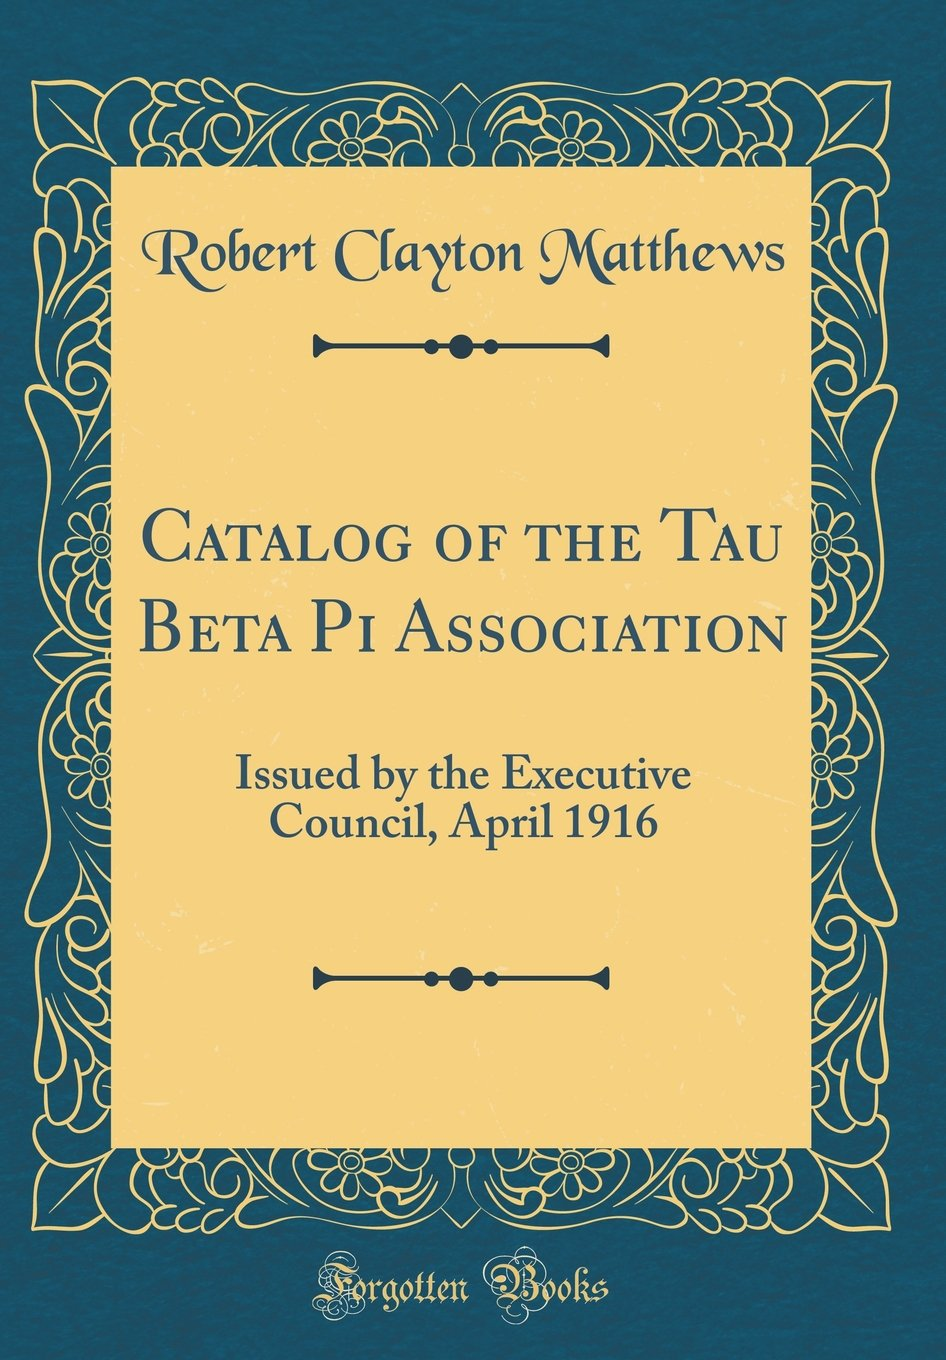 Catalog of the Tau Beta Pi Association: Issued by the Executive Council, April 1916 (Classic Reprint) PDF